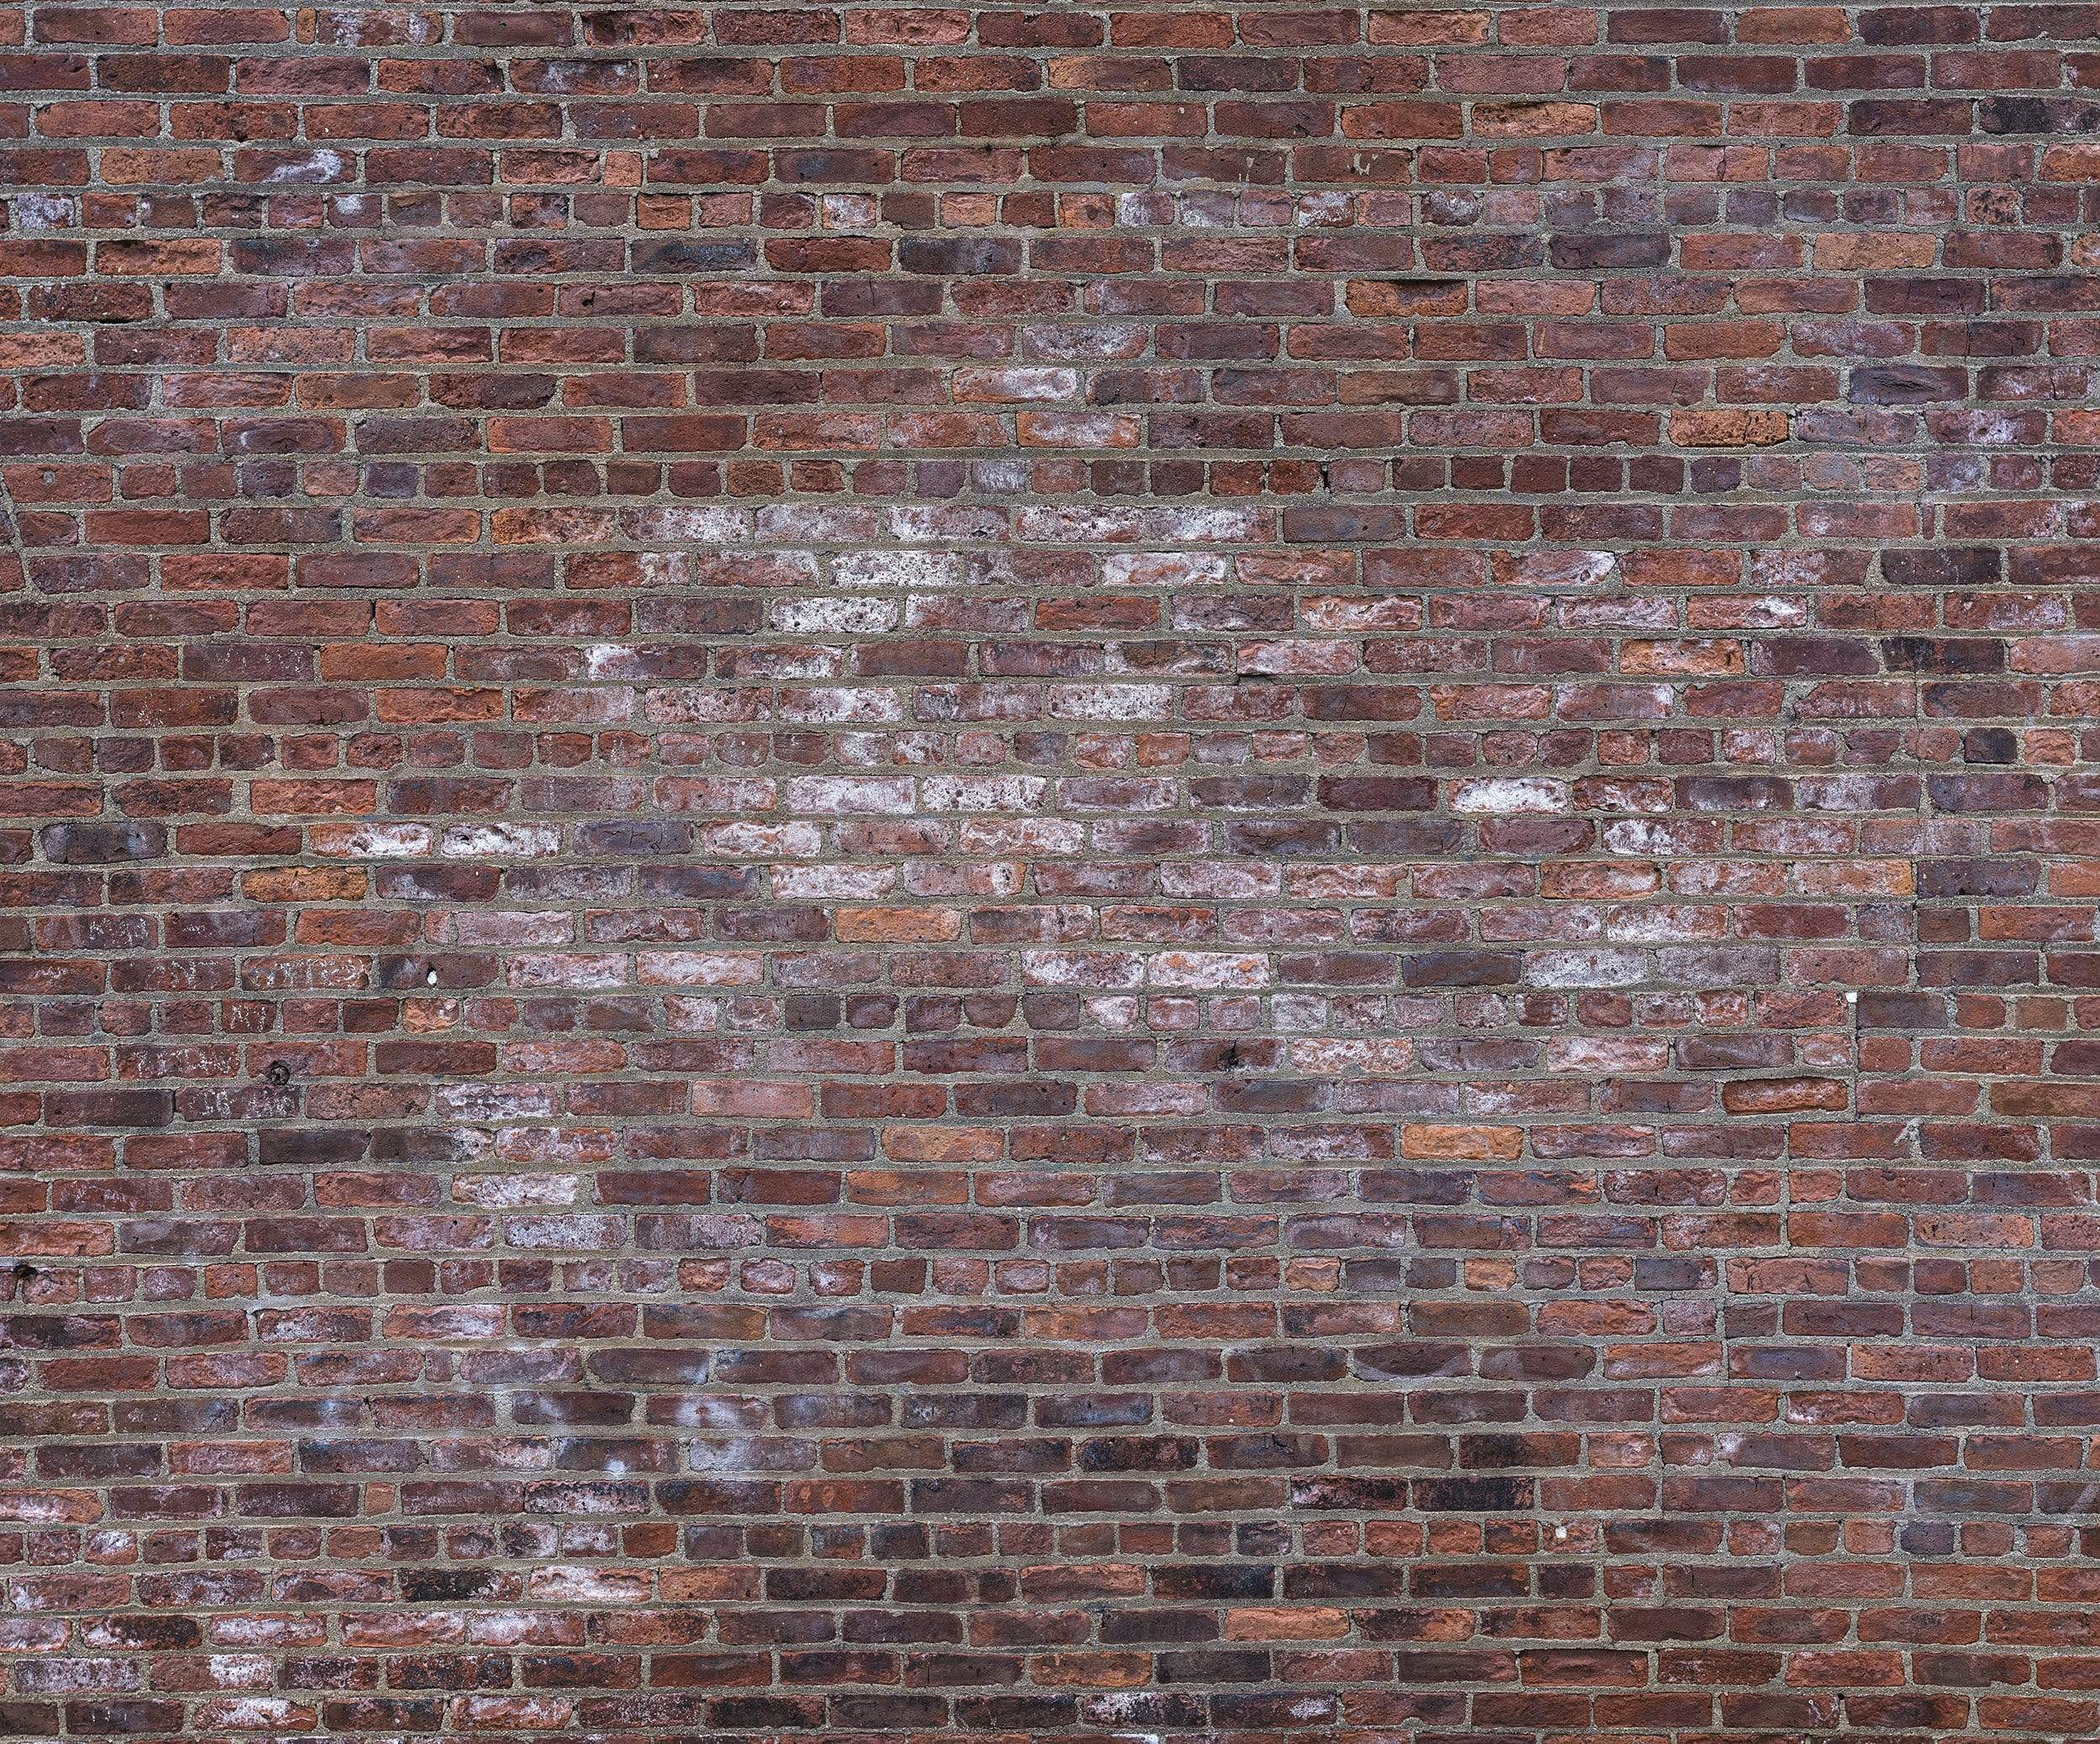 Weathered brick wall: GigaPixel Image